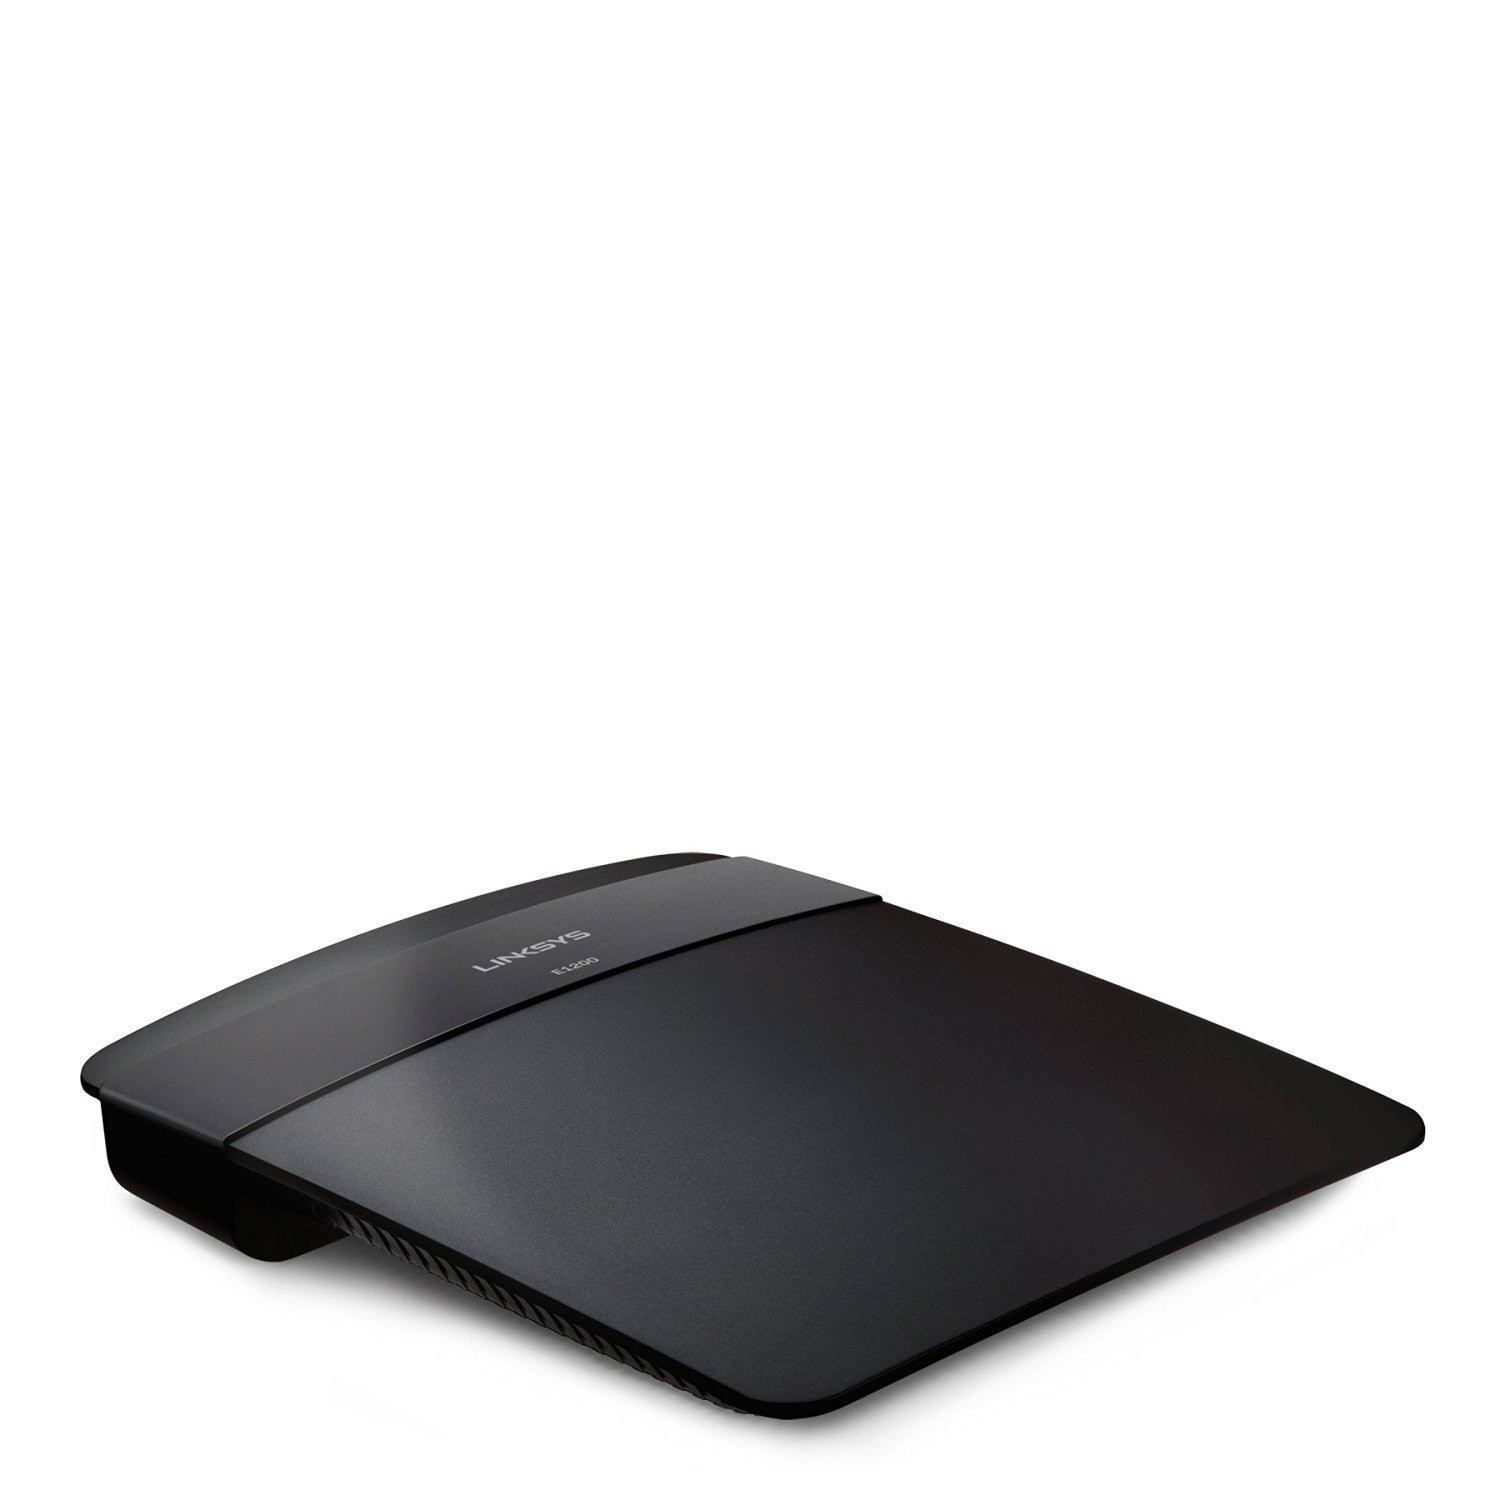 Linksys E1200 N300 Flashed with DD-WRT Firmware